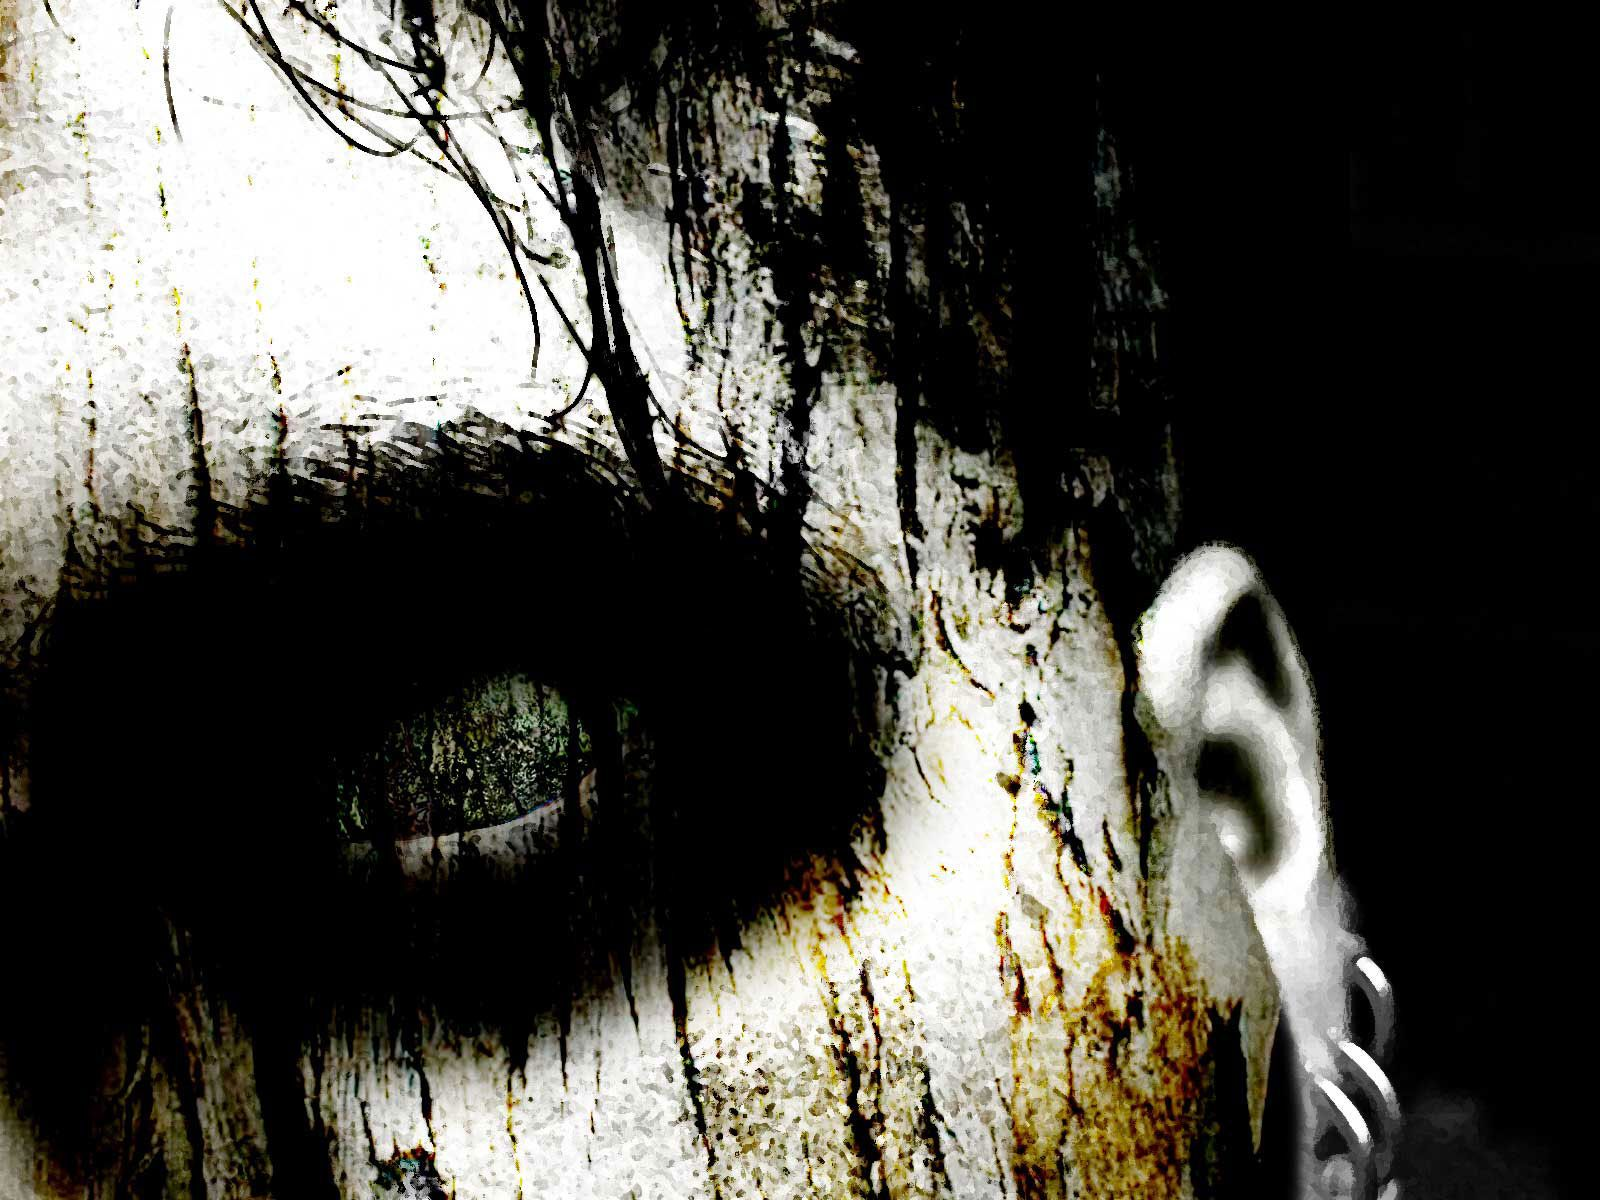 Horror Wallpapers High Resolution Scary Backgrounds With